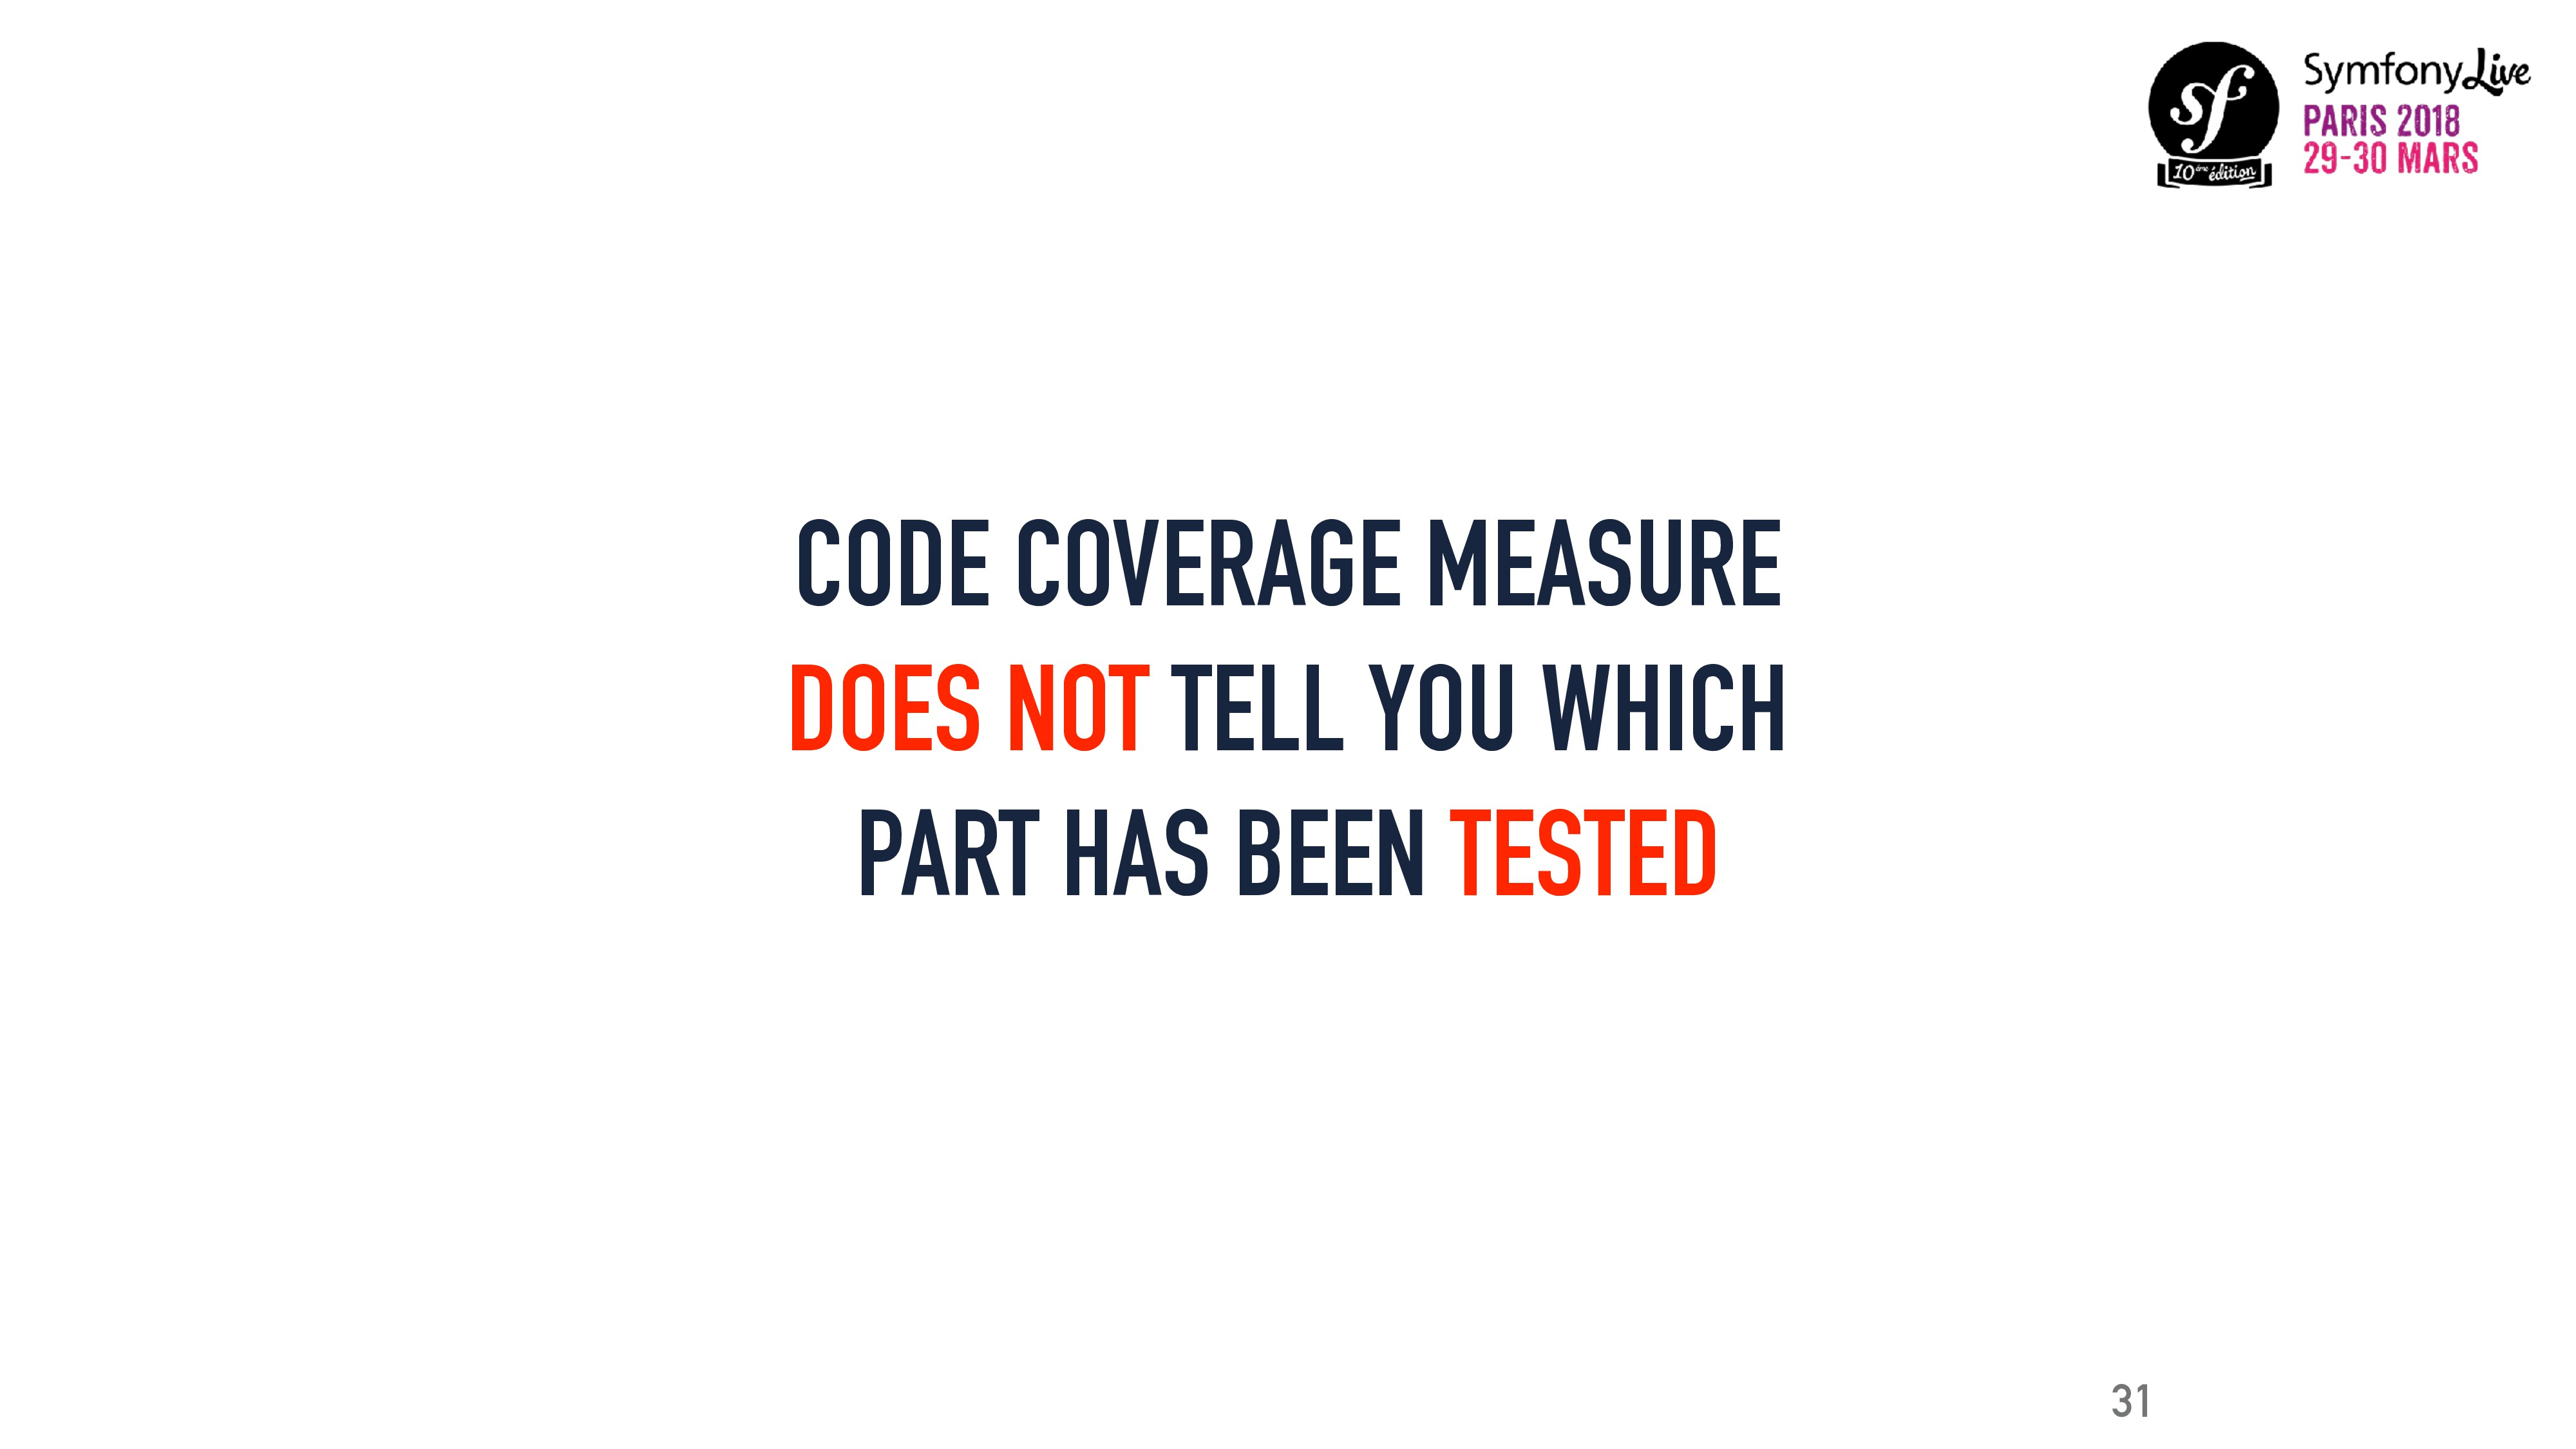 CODE COVERAGE MEASURE DOES NOT TELL YOU WHICH P...